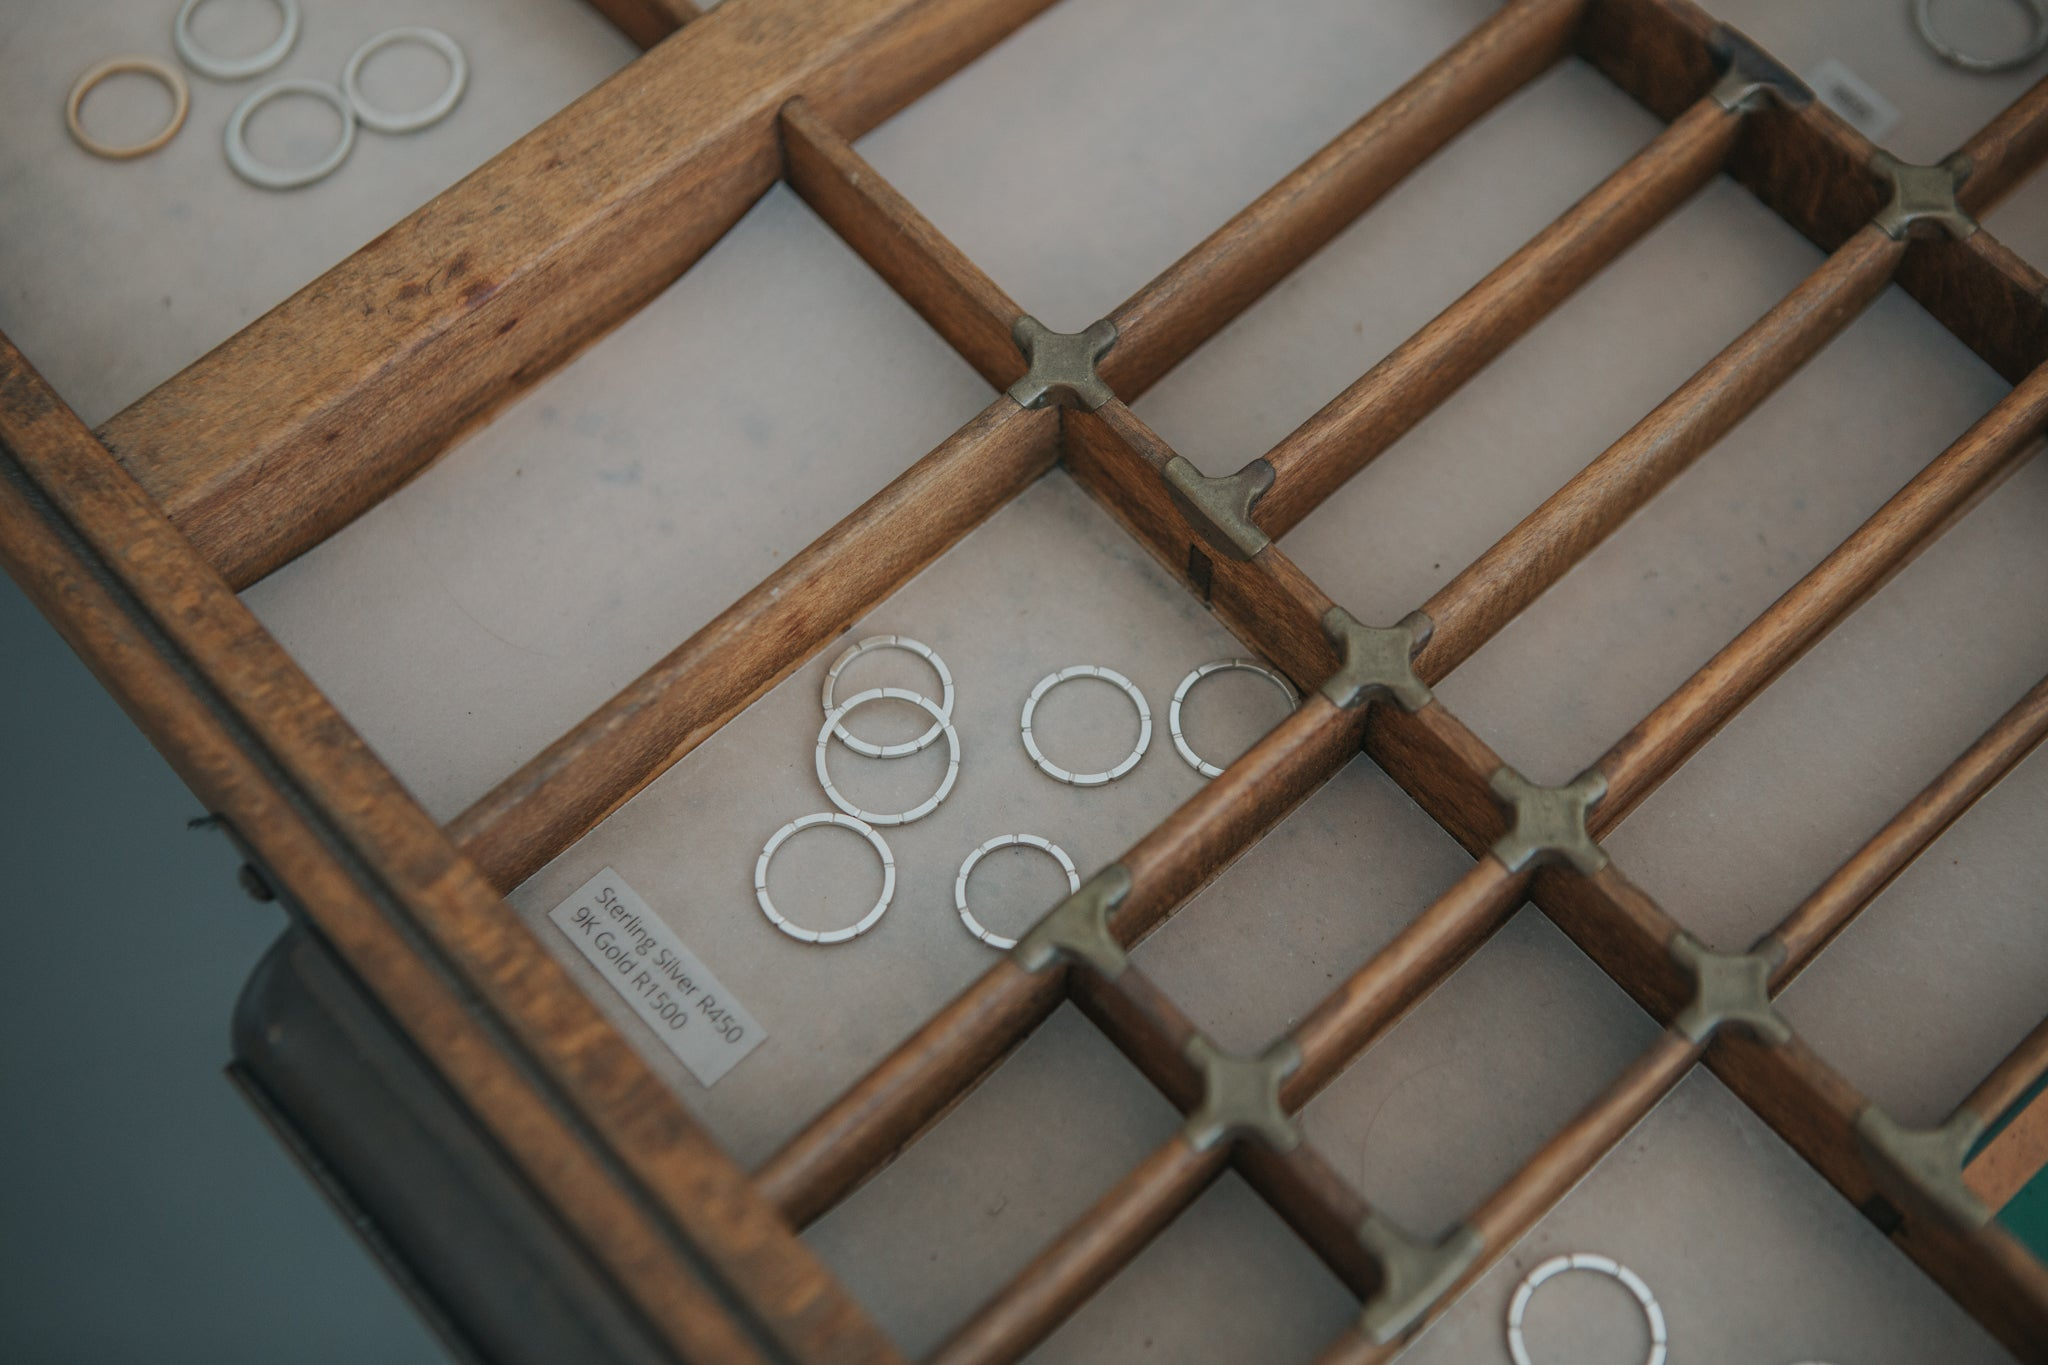 Silver and gold ethical, ecofriendly rings handcrafted in recycled e-waste in an old printers tray